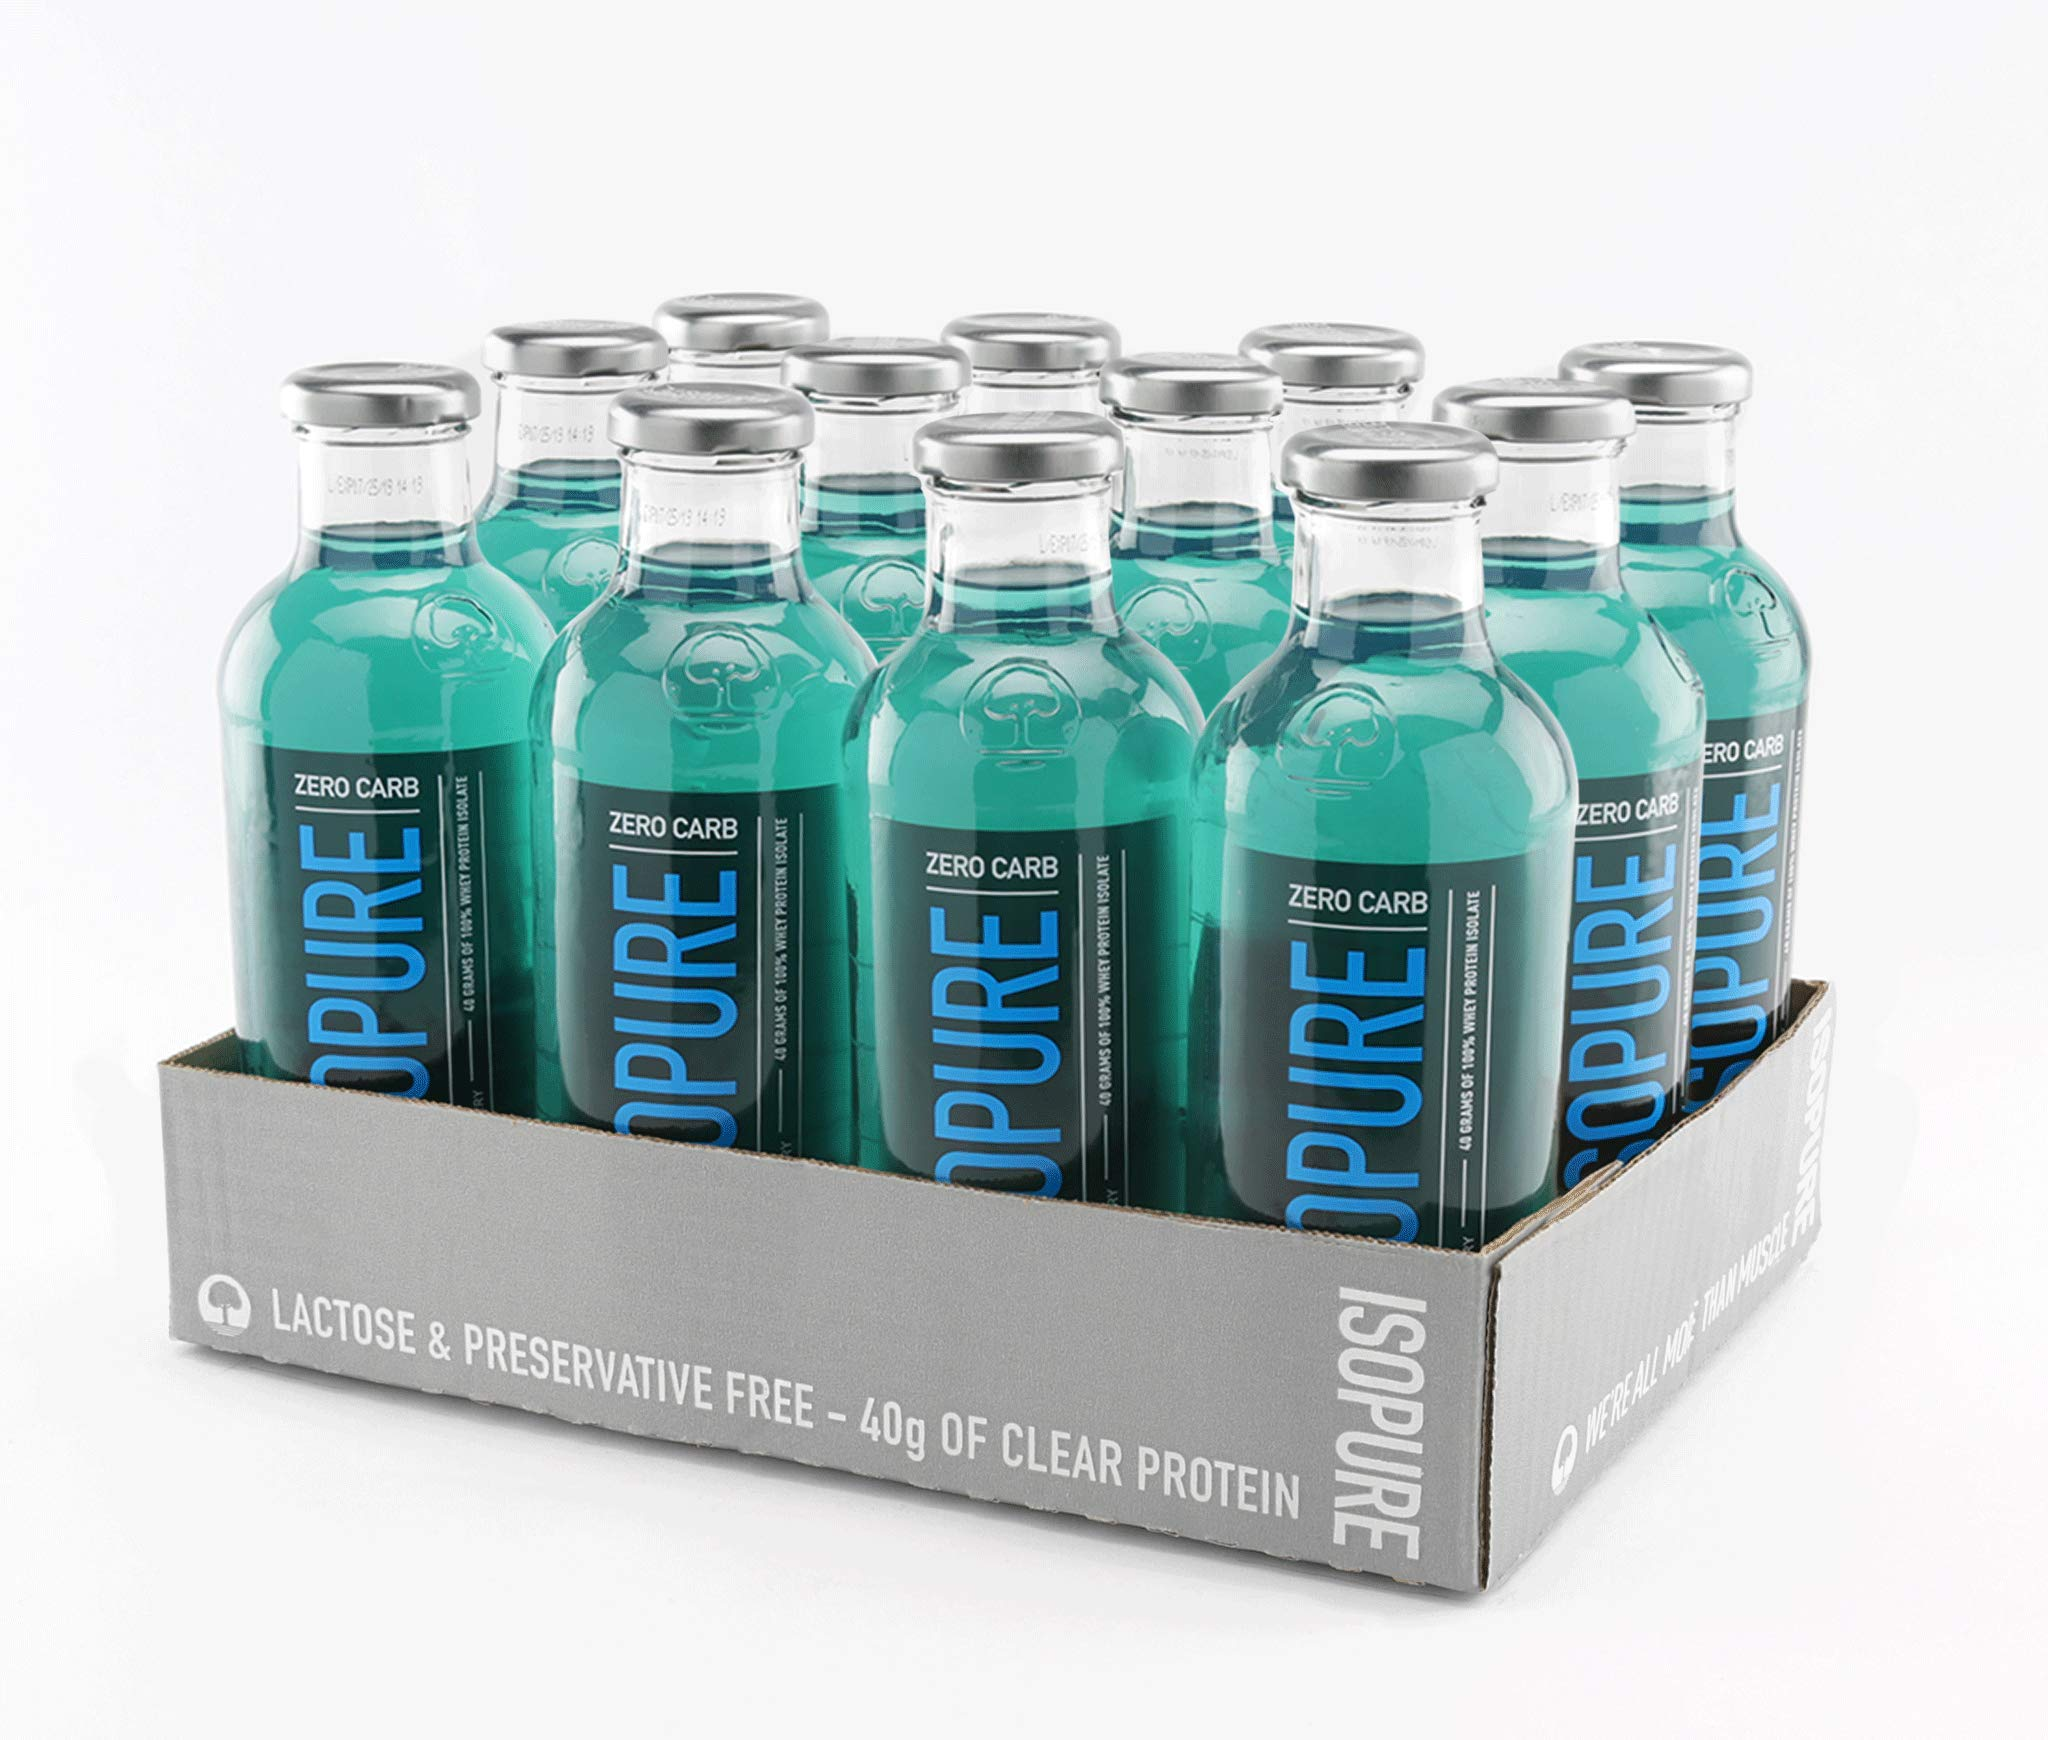 Isopure 40g Protein, Zero Carb Ready-to-Drink- Blue Raspberry, 20 Ounce (Pack of 12) ... by Nature's Best